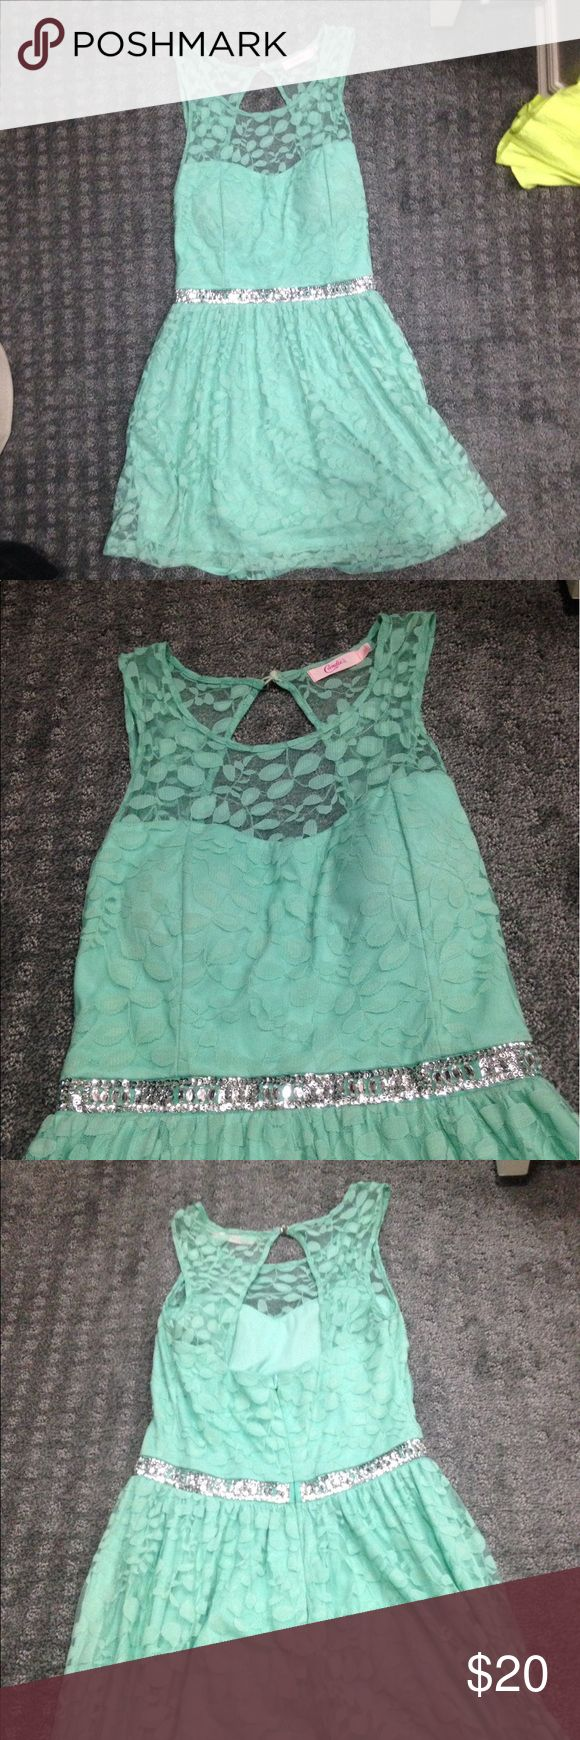 Light green mint dress Light green dress with diamond studs on the band part. Never worn, new with tag still attached. Pet free. Smoke free. Any other questions, ask me! Candie's Dresses Mini